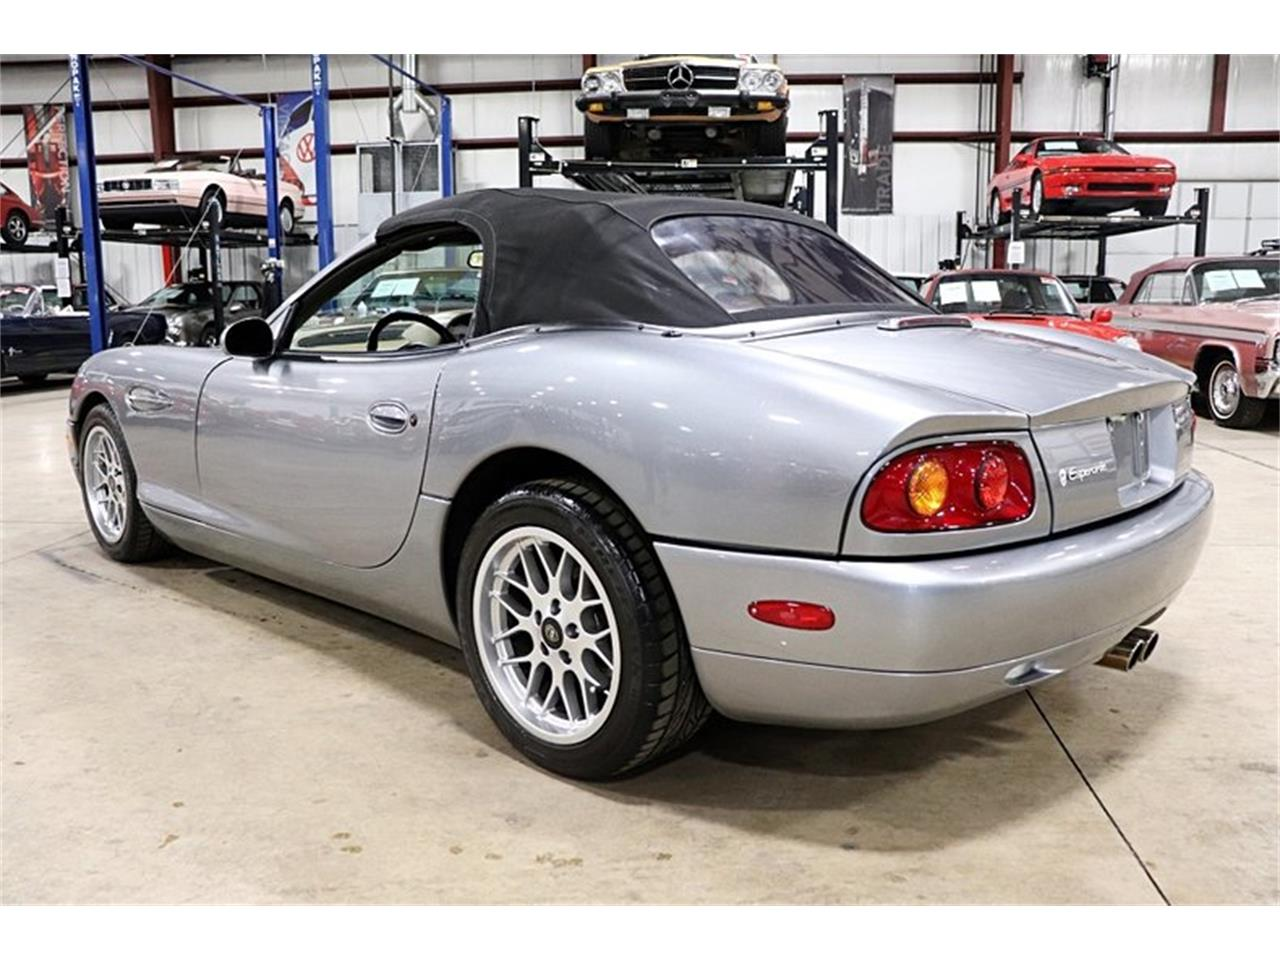 2001 Panoz Esperante for sale in Kentwood, MI – photo 72